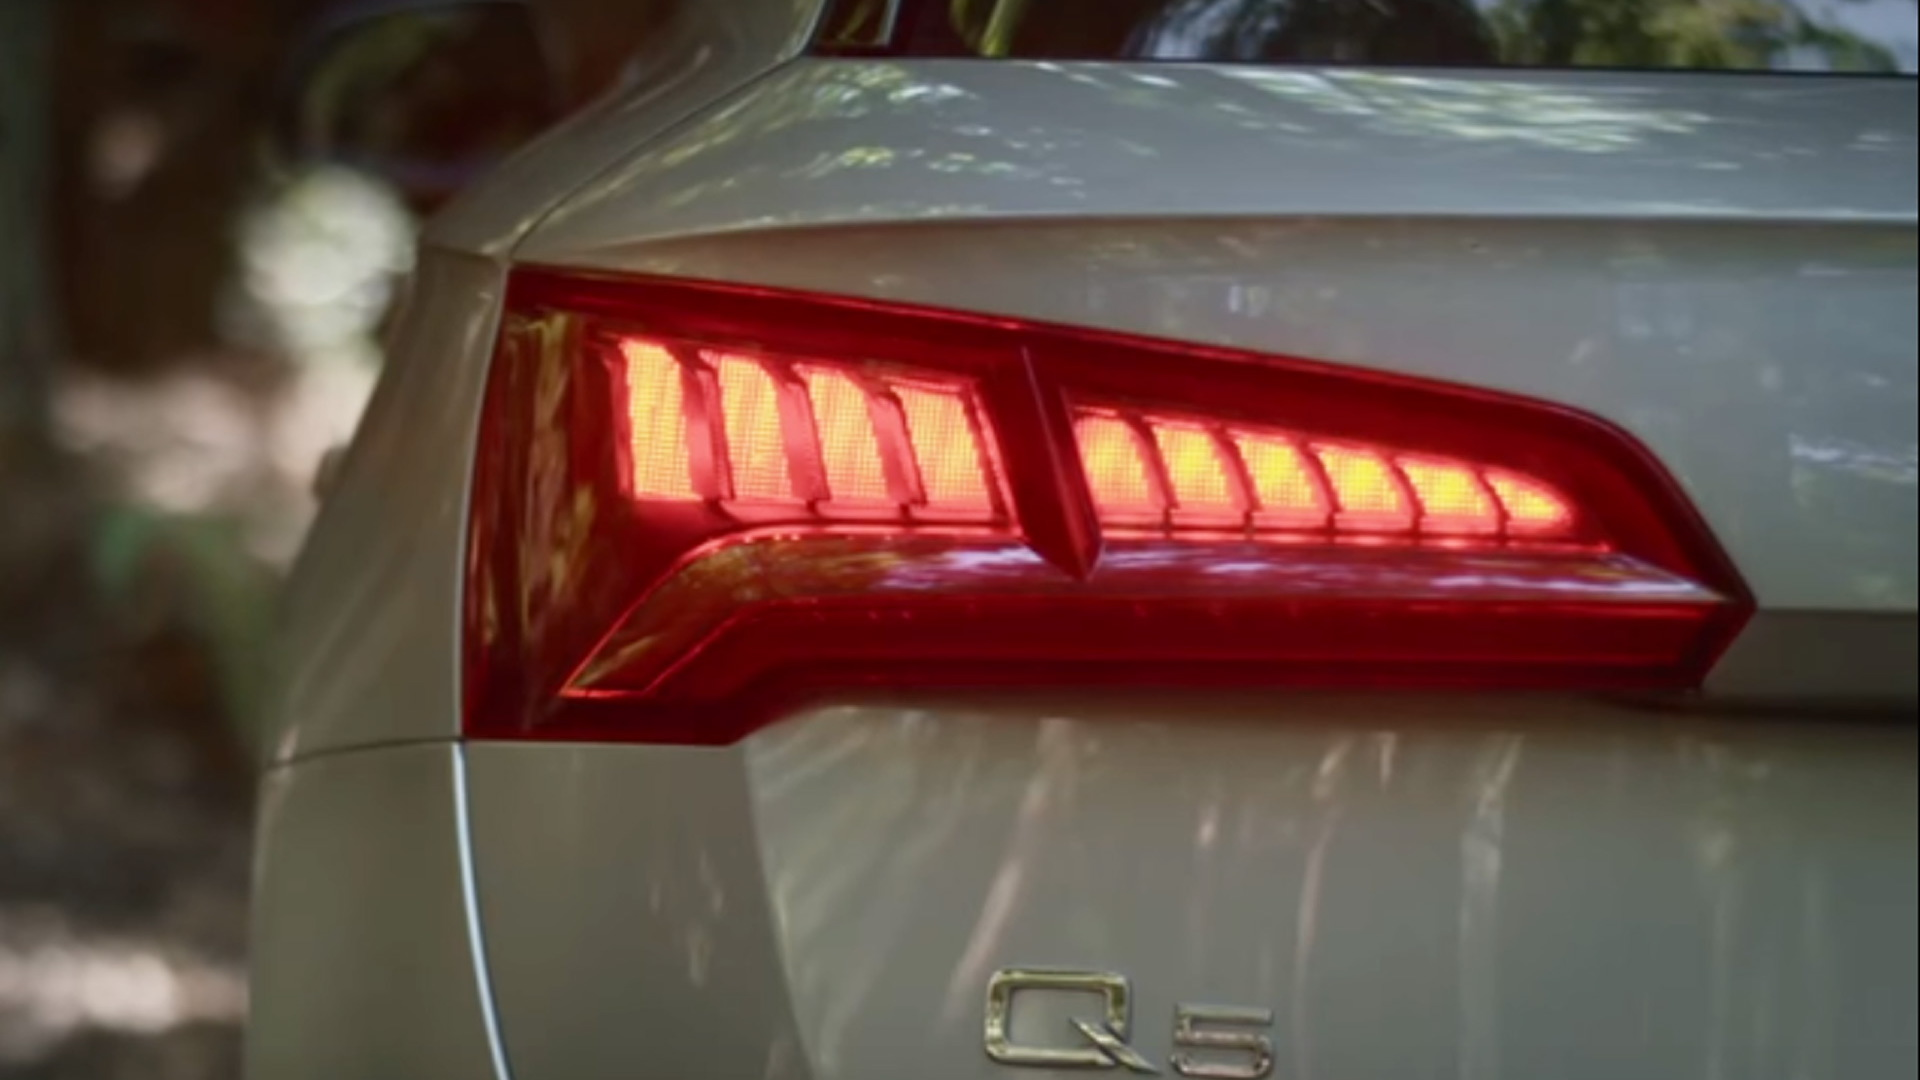 Teaser for new Audi Q5 debuting at 2016 Paris auto show